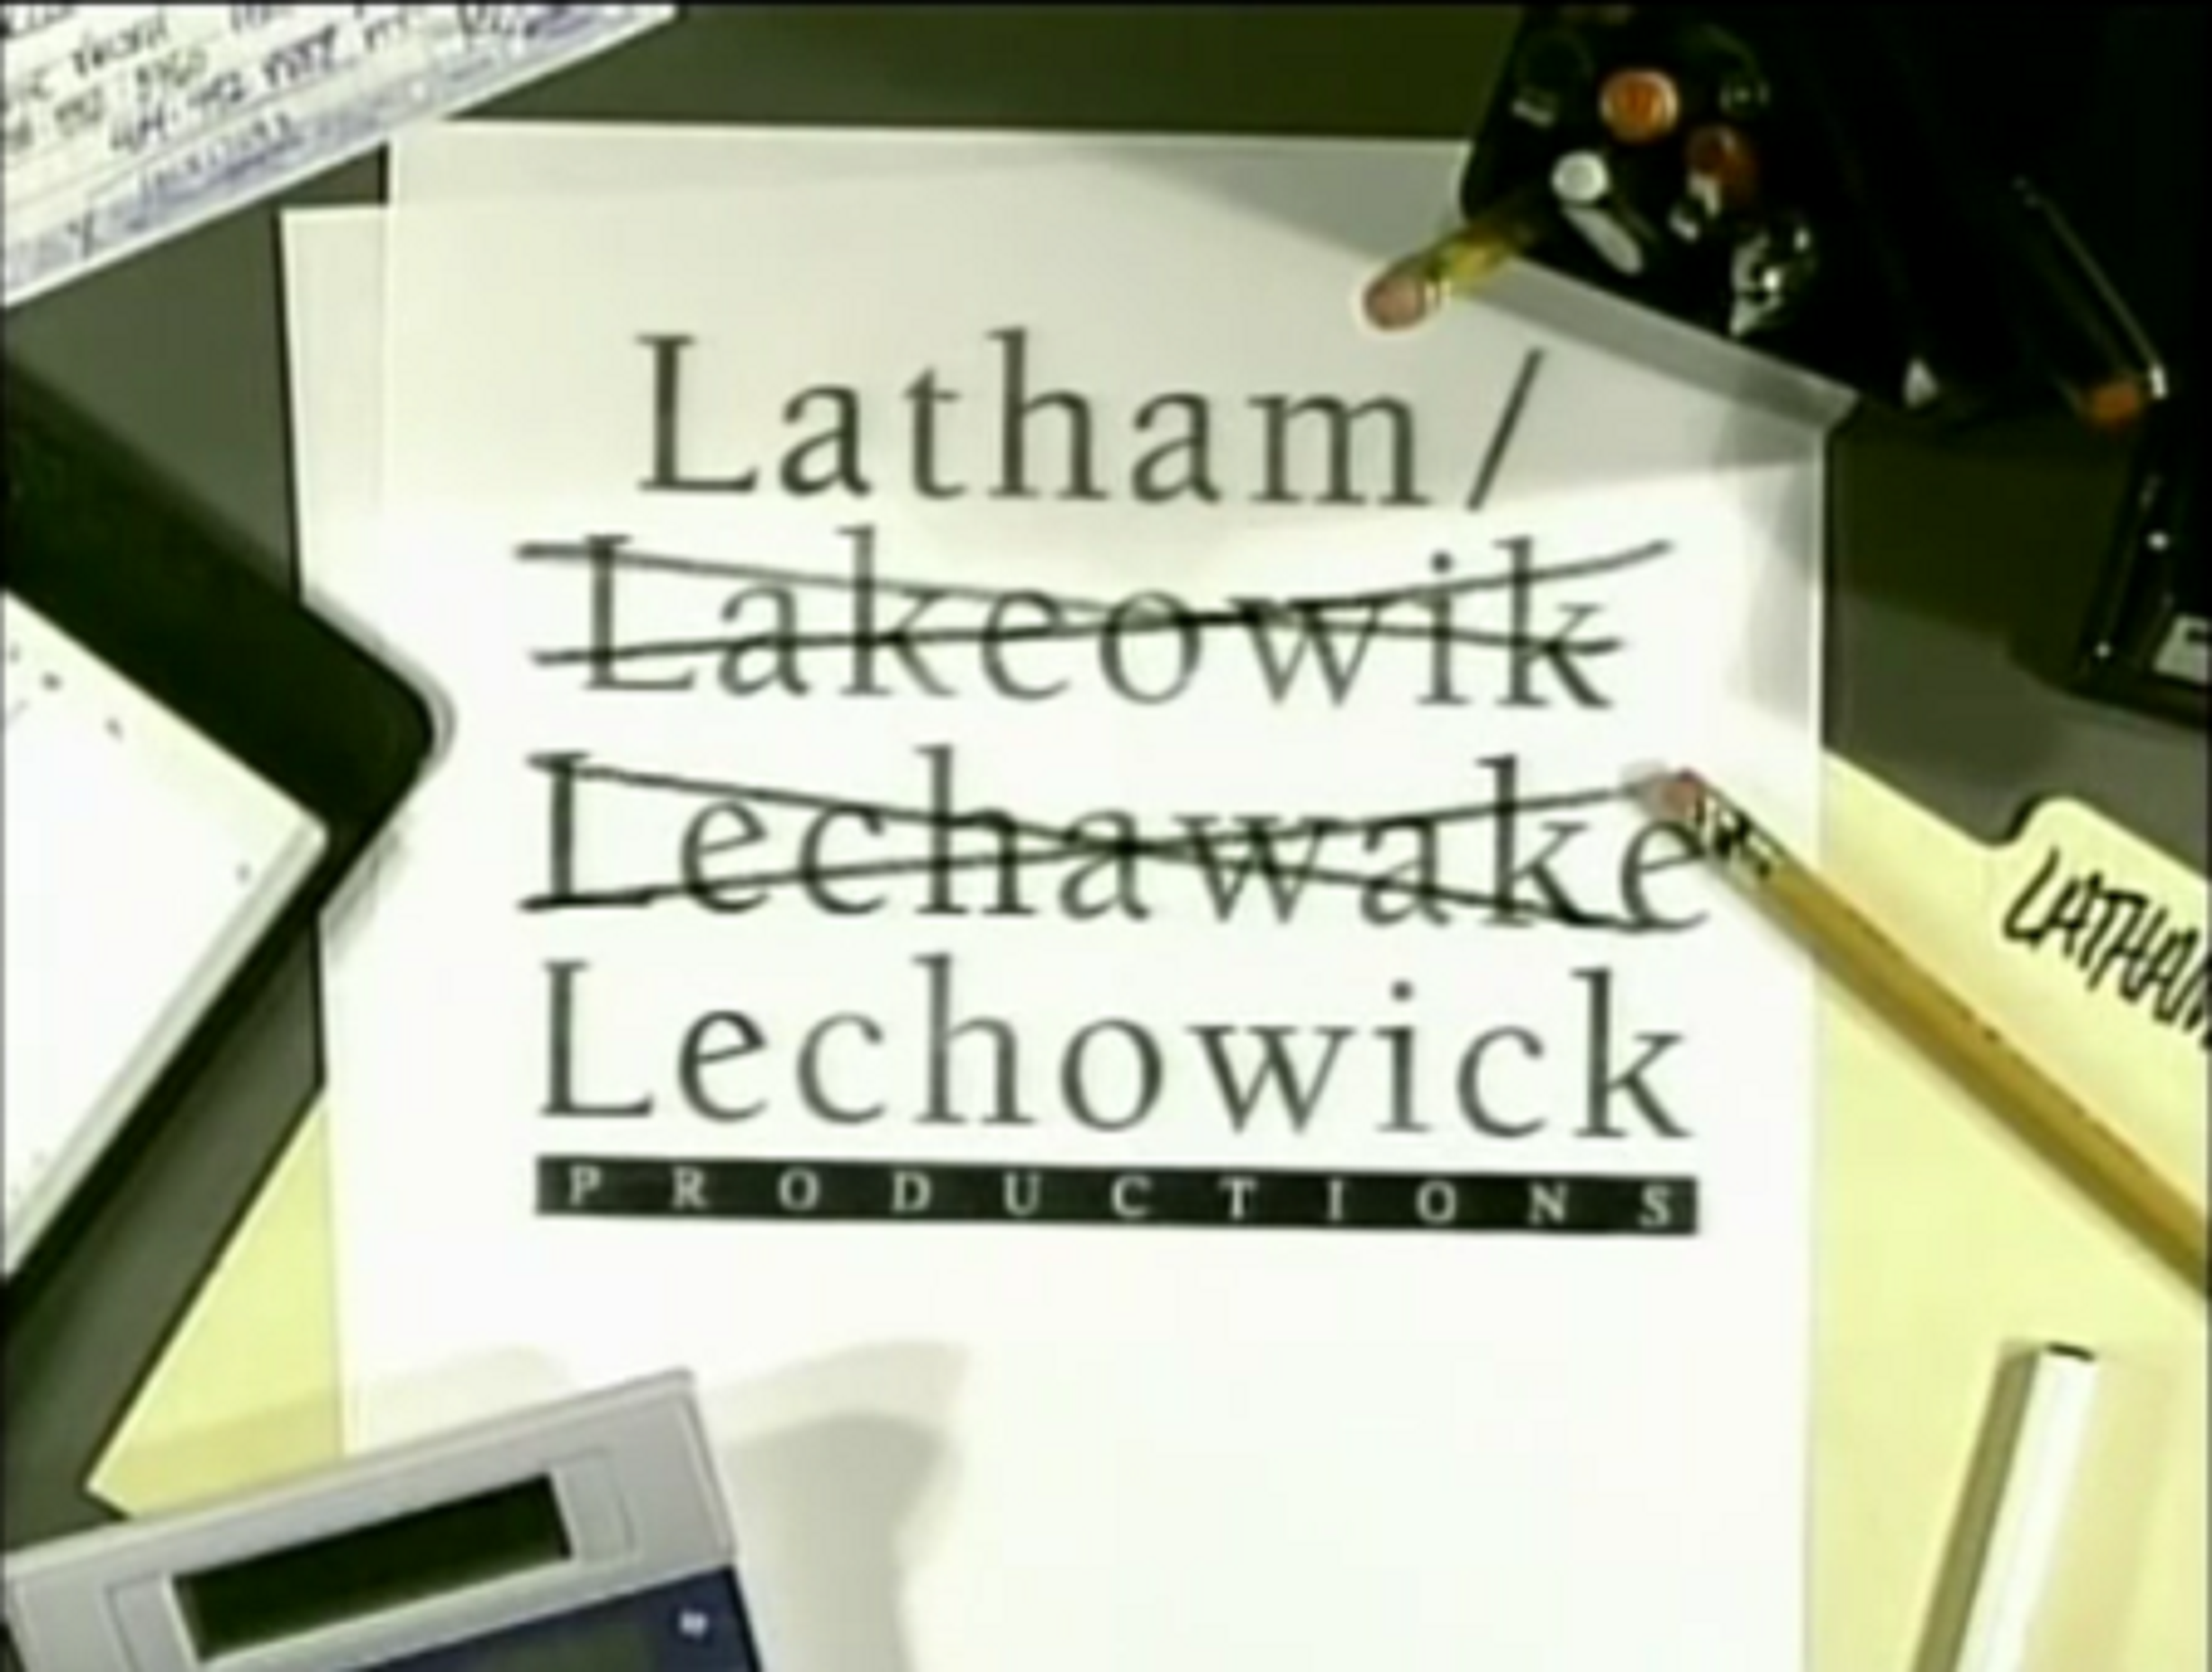 Latham/Lechowick Productions